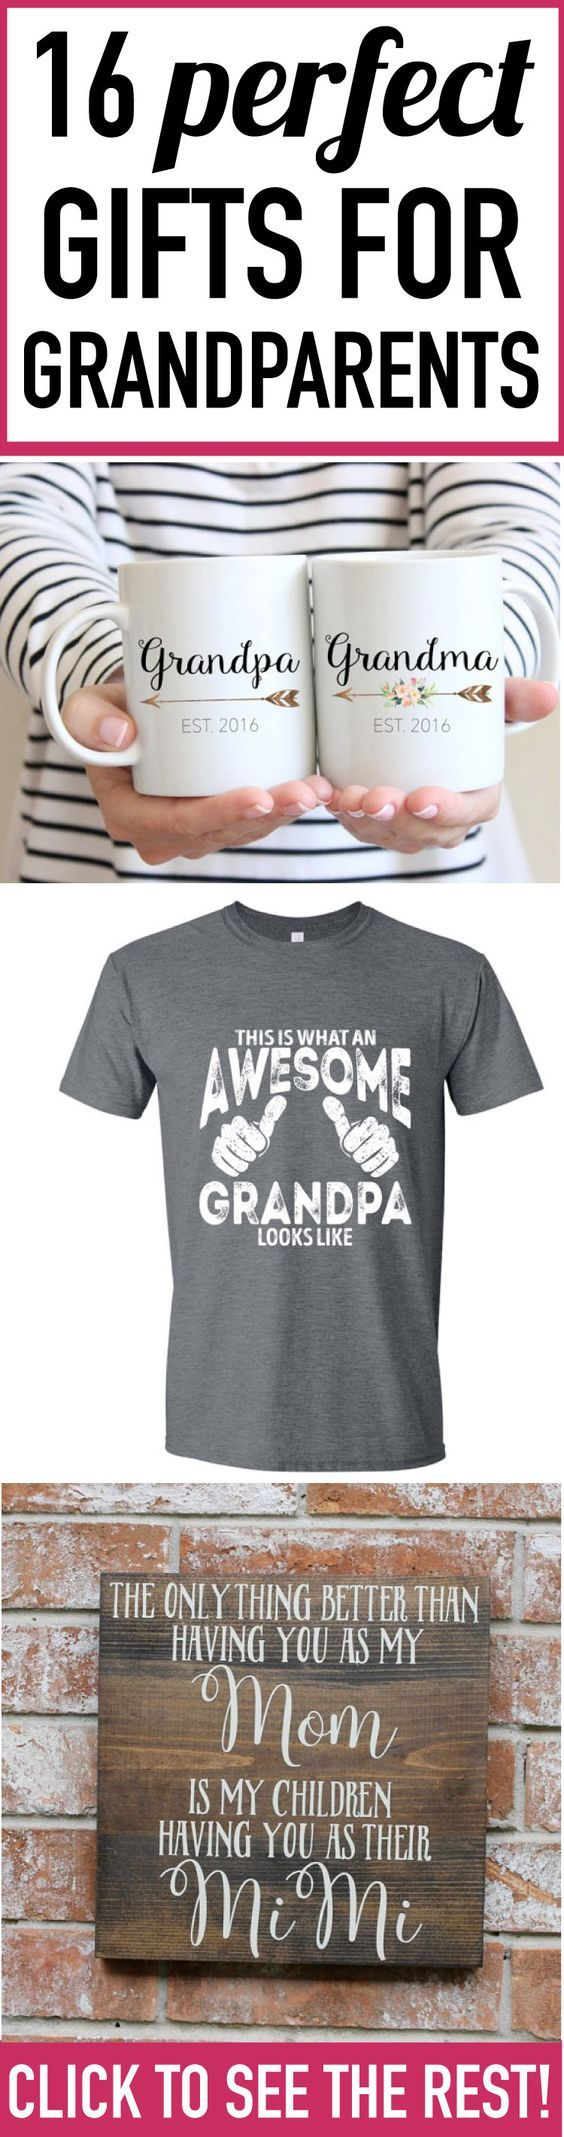 25 Best Gift Ideas For Grandparents Ideas On Pinterest